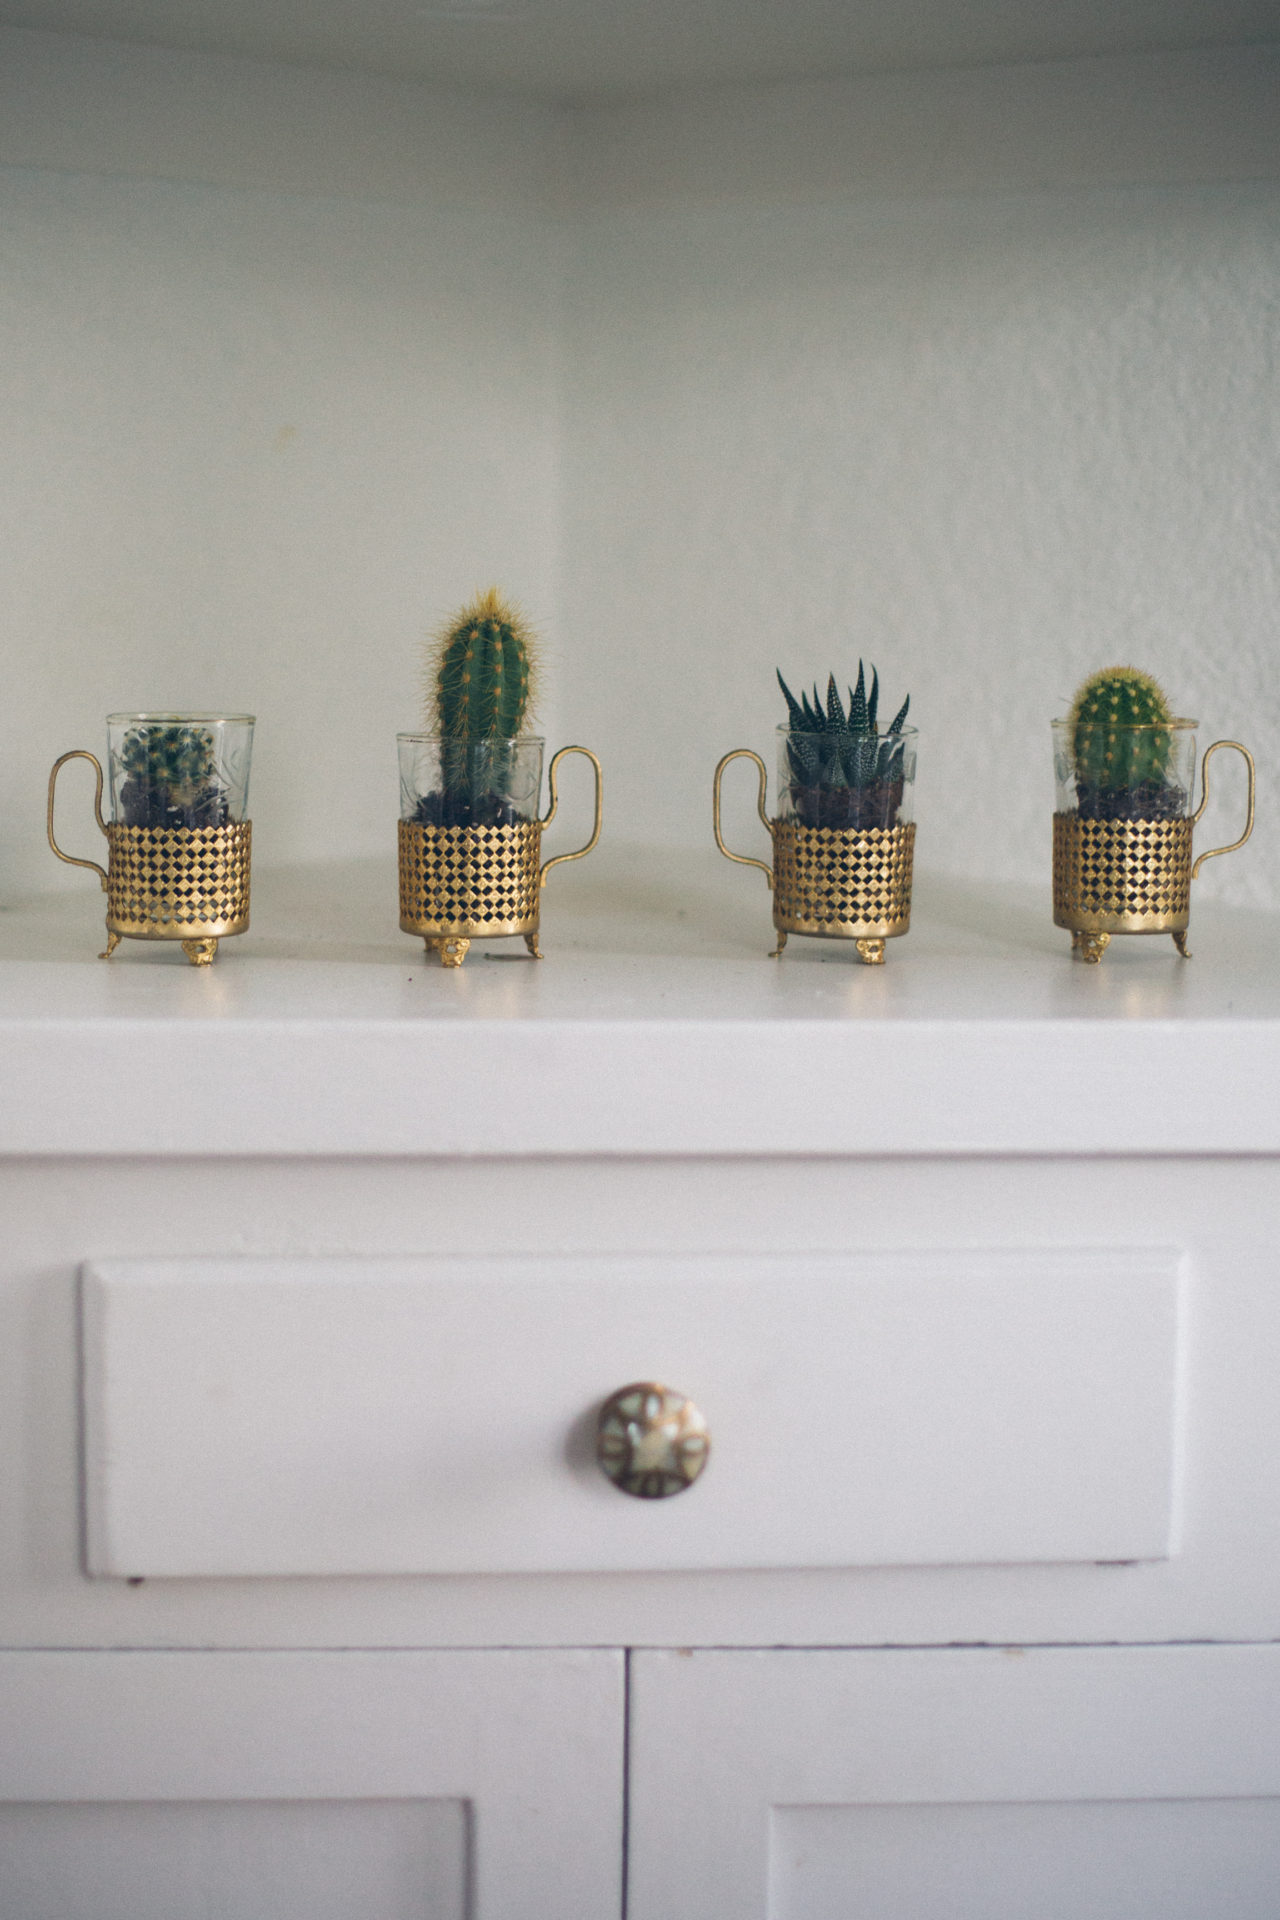 MrKate_Bouquet_of_The_Month_Cacti_Mini-7656